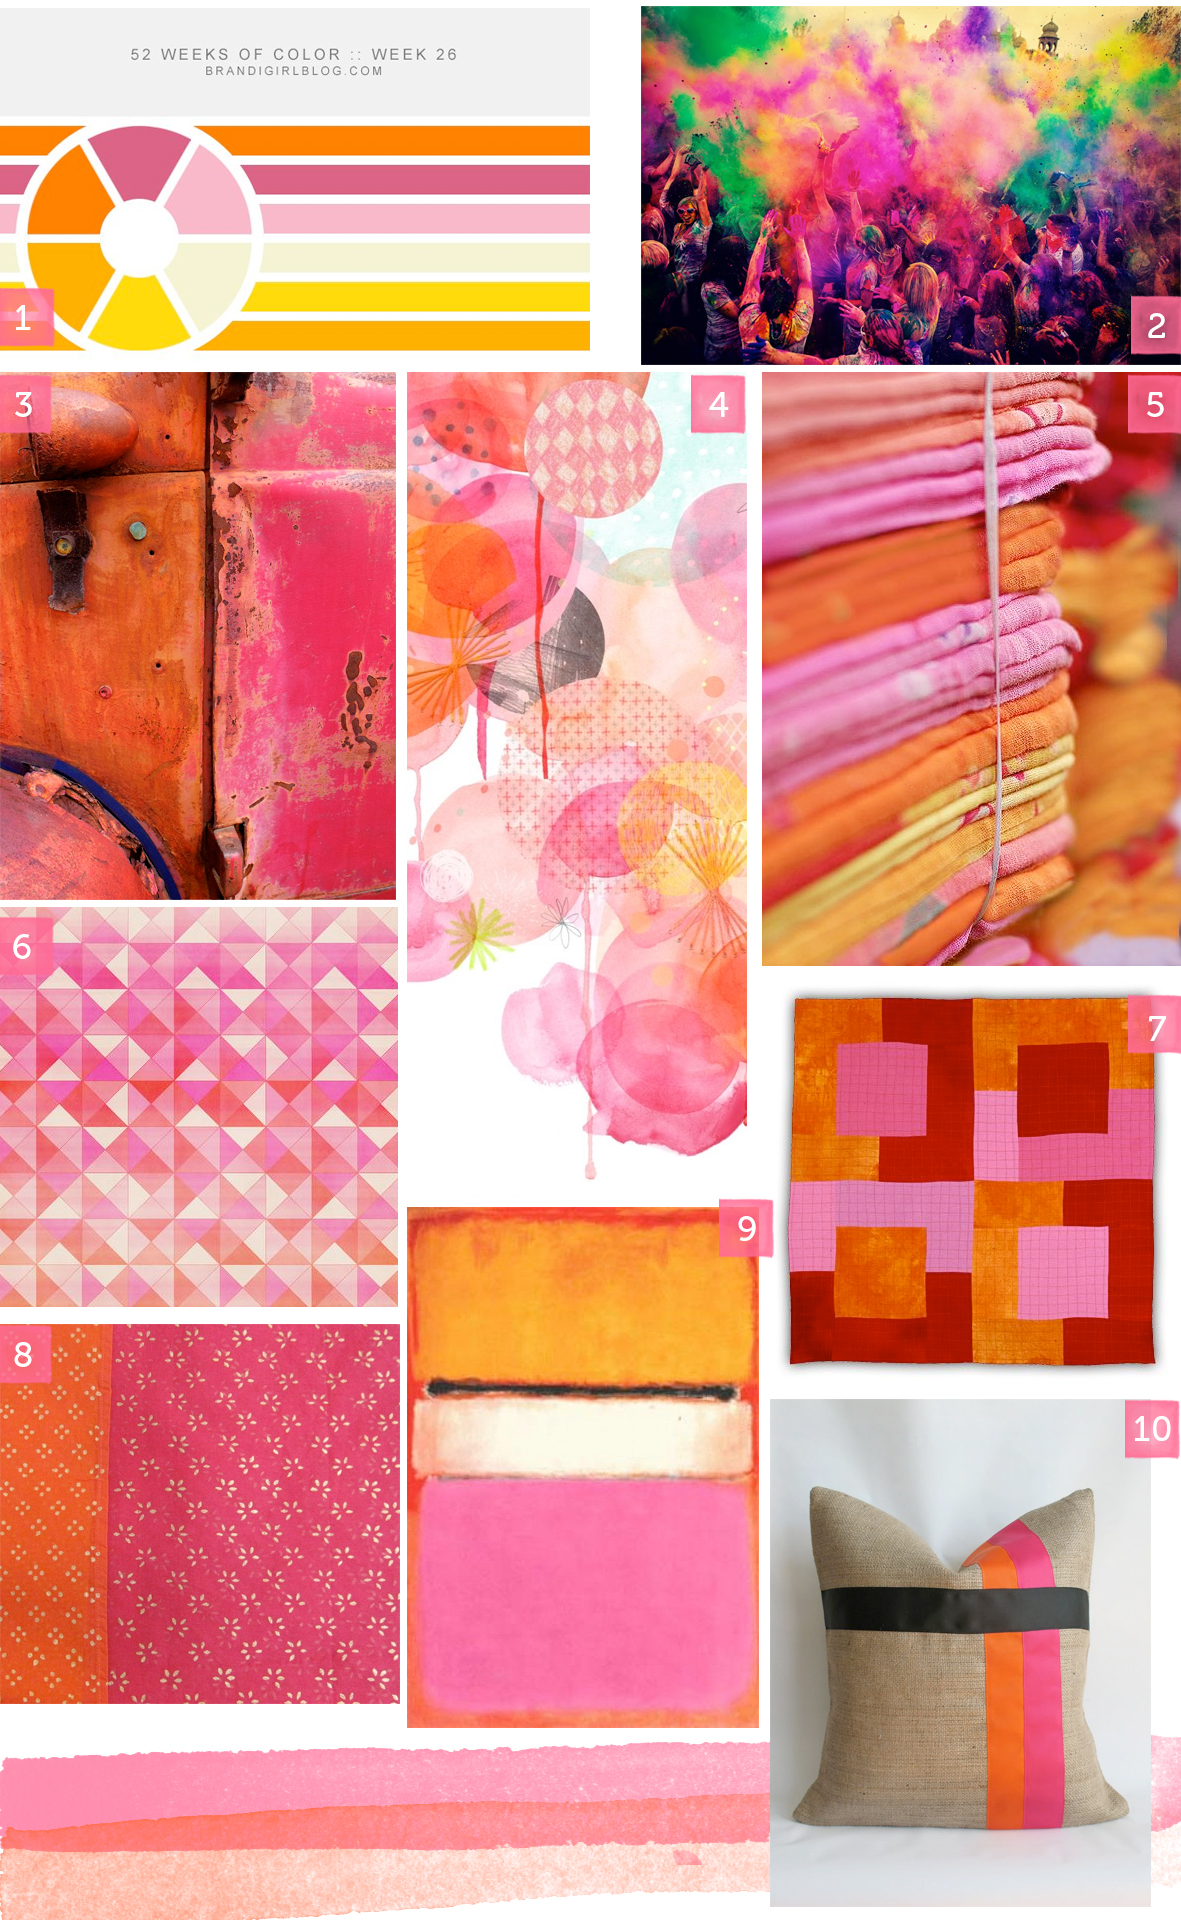 A selection of orange and pink products and images